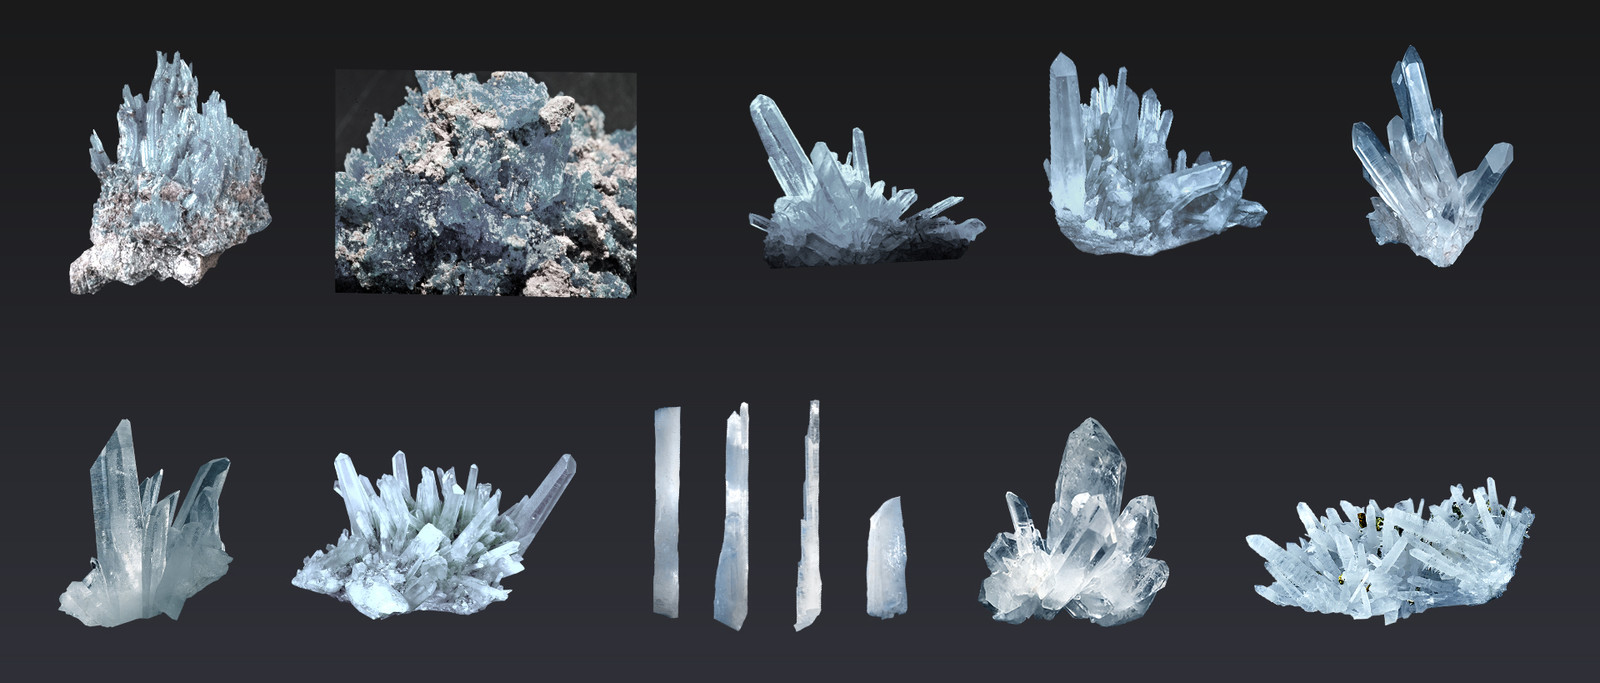 crystal assets I used to create the terrain in the foreground